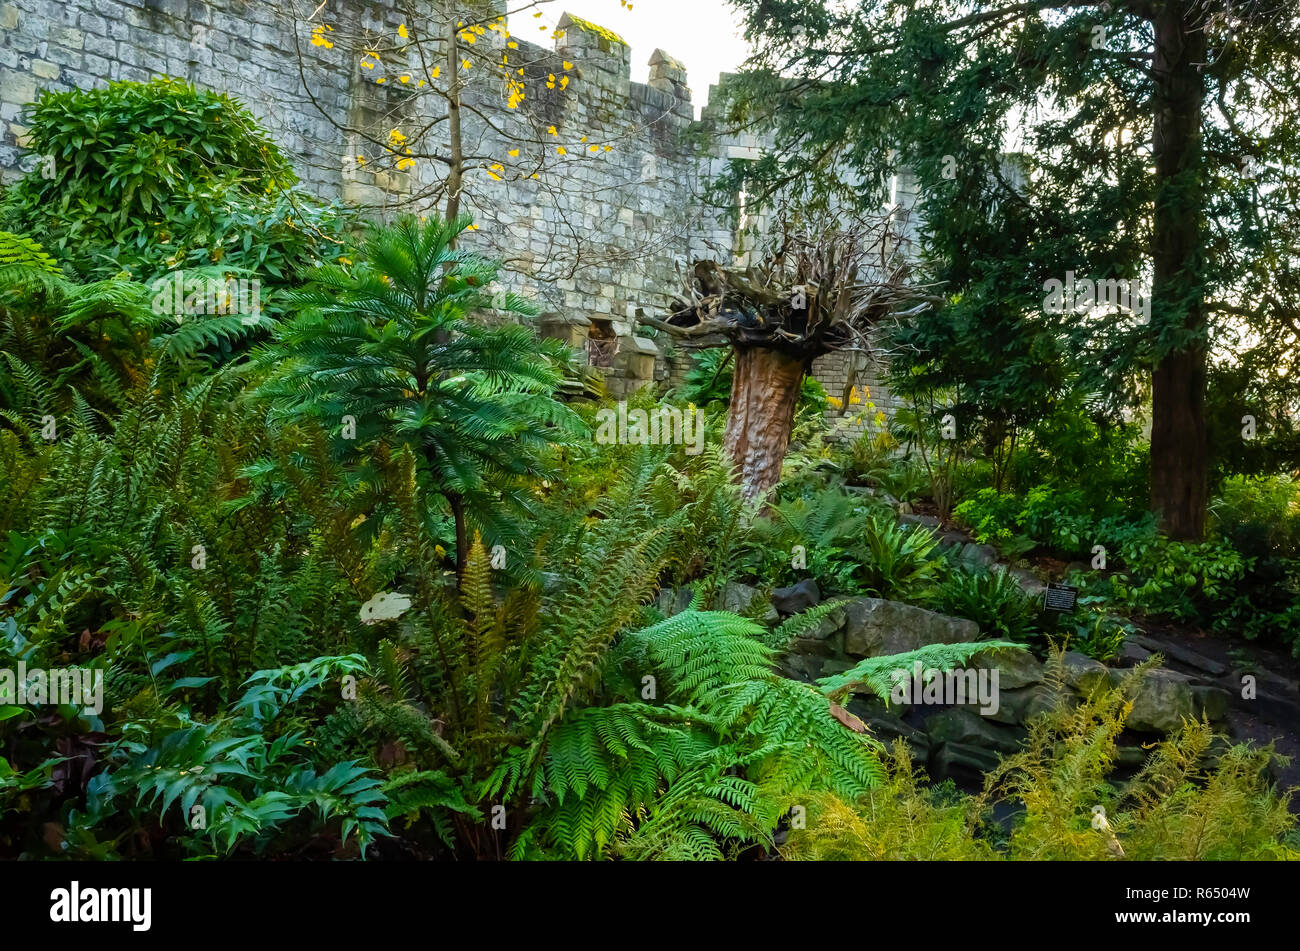 The Fern Garden planted in the Museum Gardens in York includes native and non-native species including a Ginko Biloba and an Upside-Down tree. - Stock Image